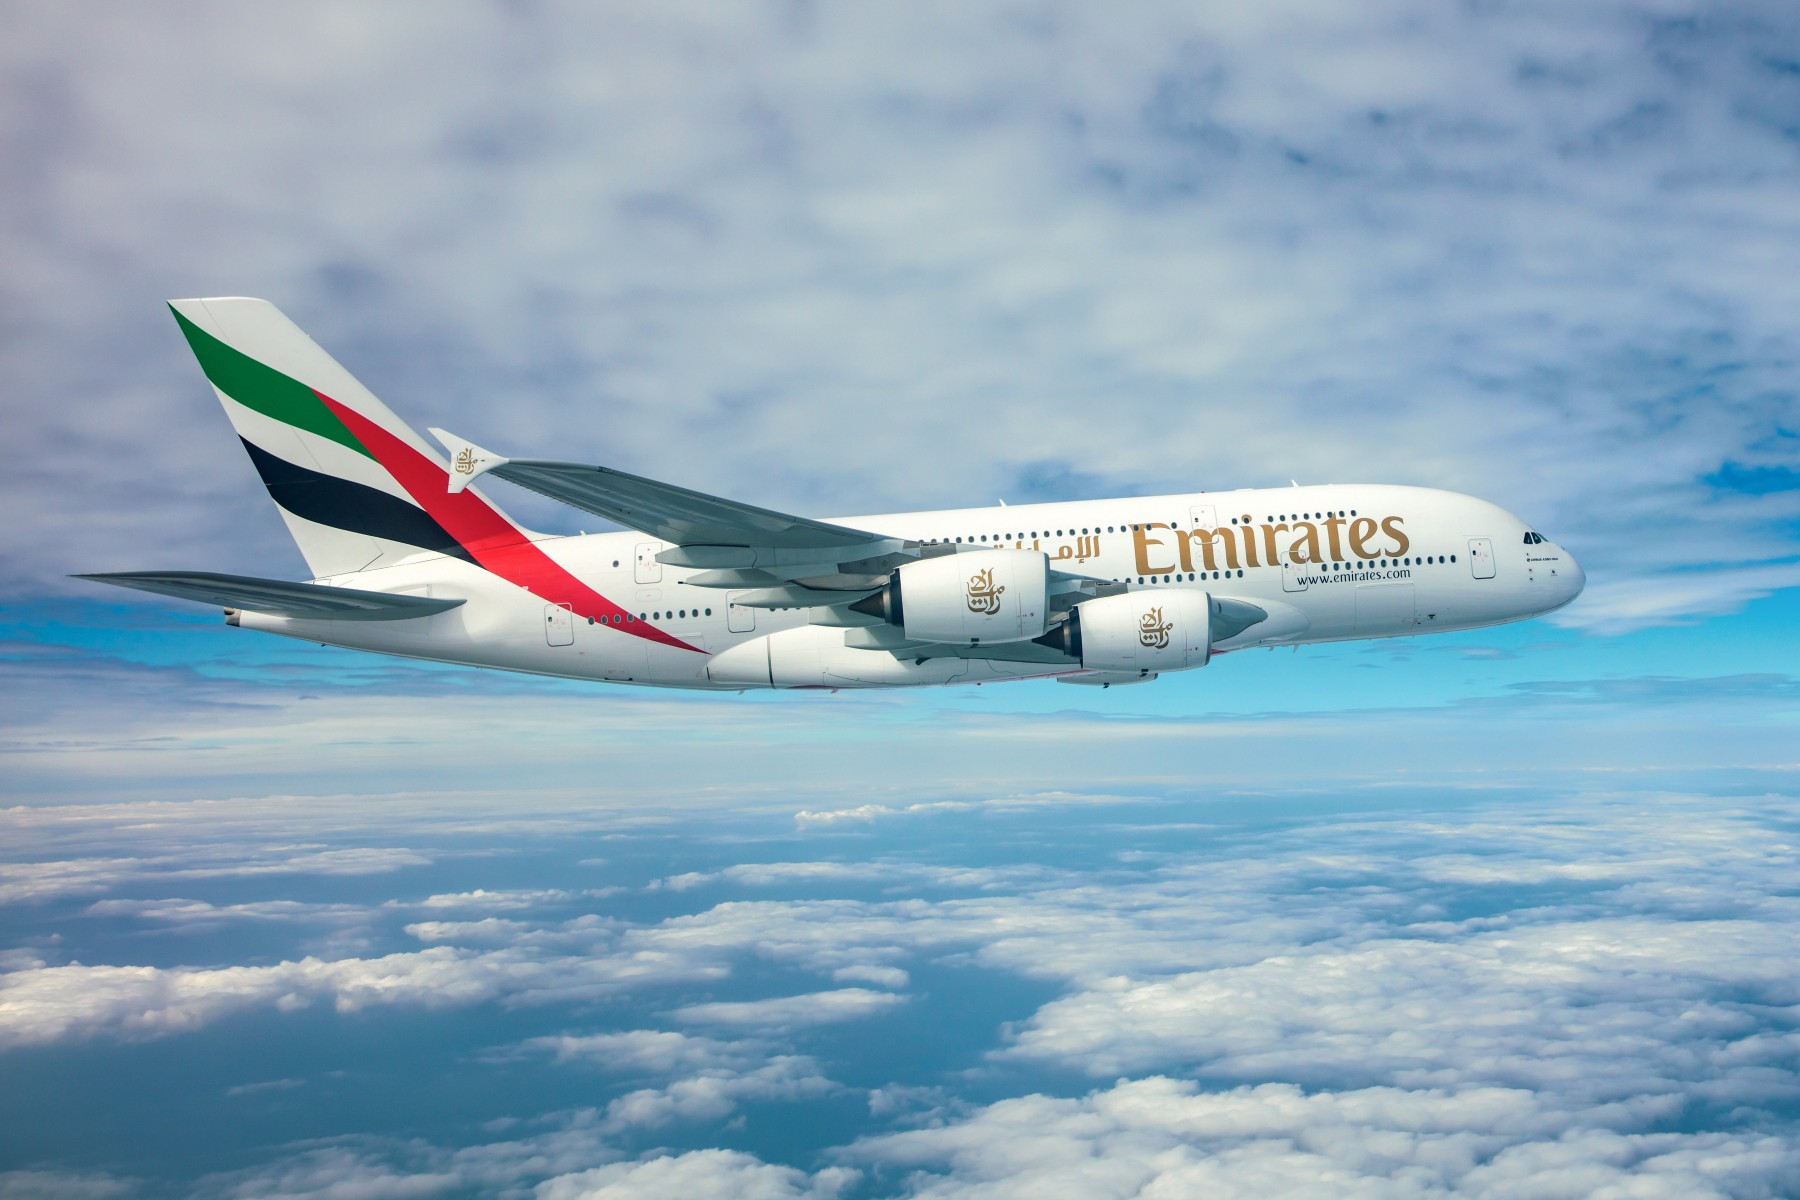 Emirates Calls A380s Up For All Cargo Duties